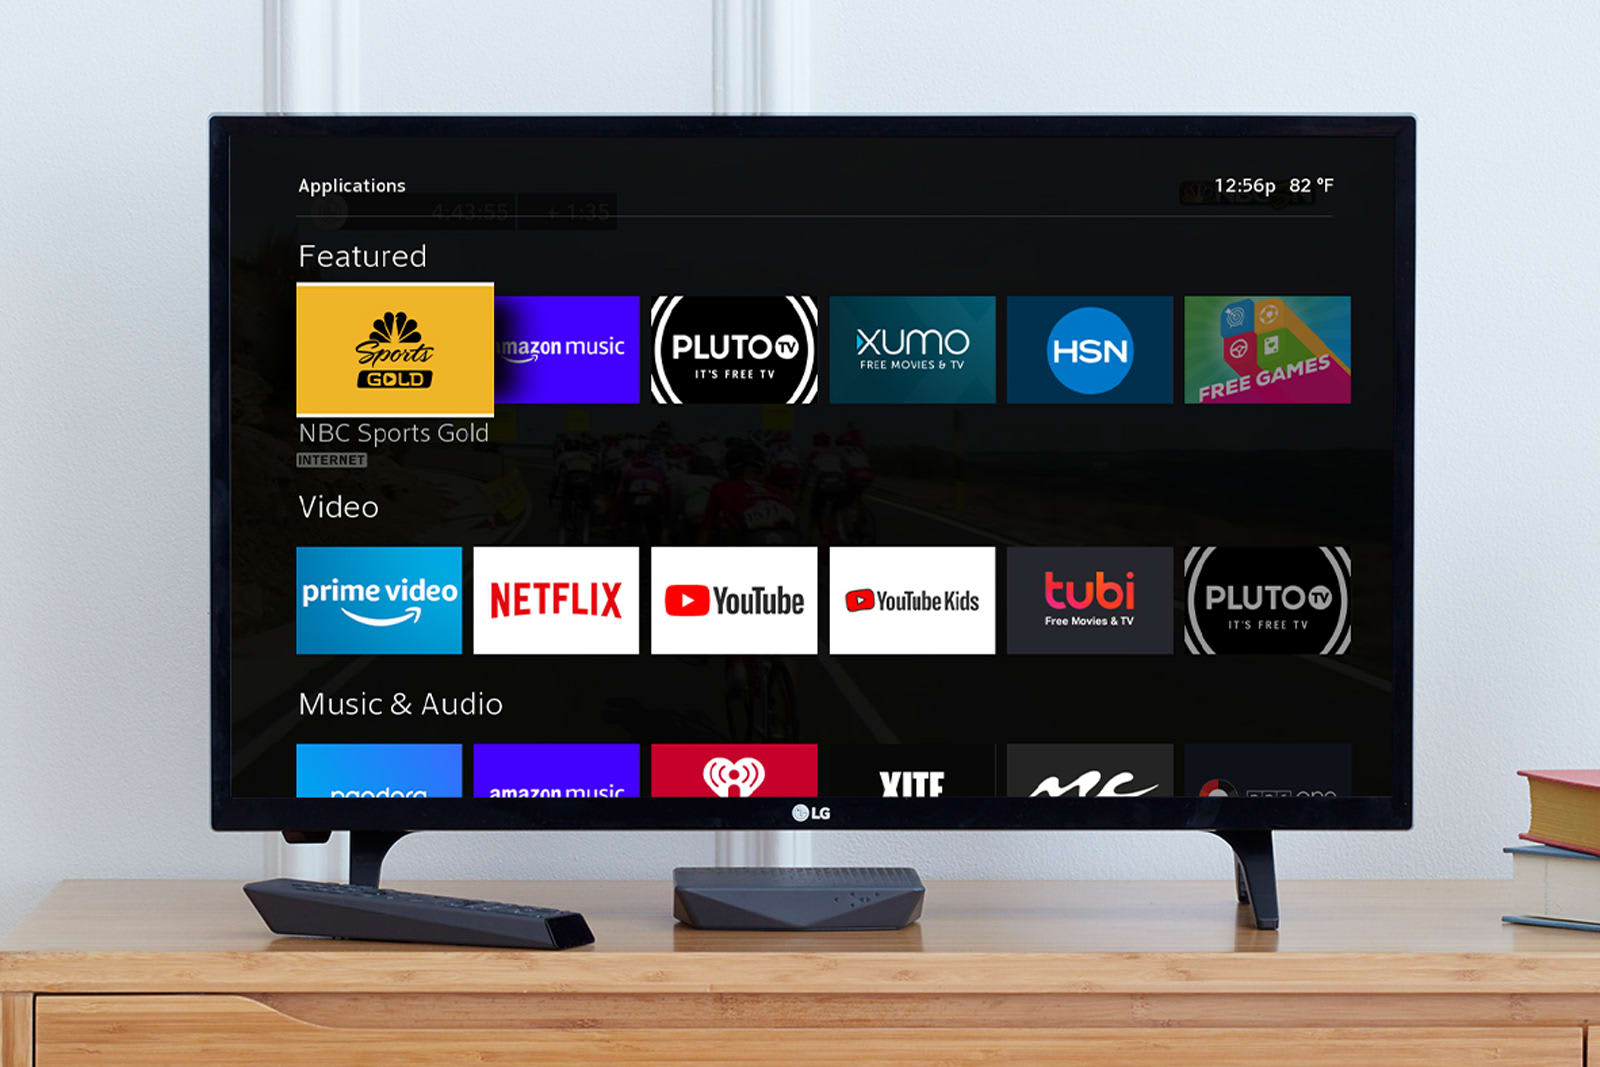 NBC's ultra-specific sports streaming comes to Xfinity X1